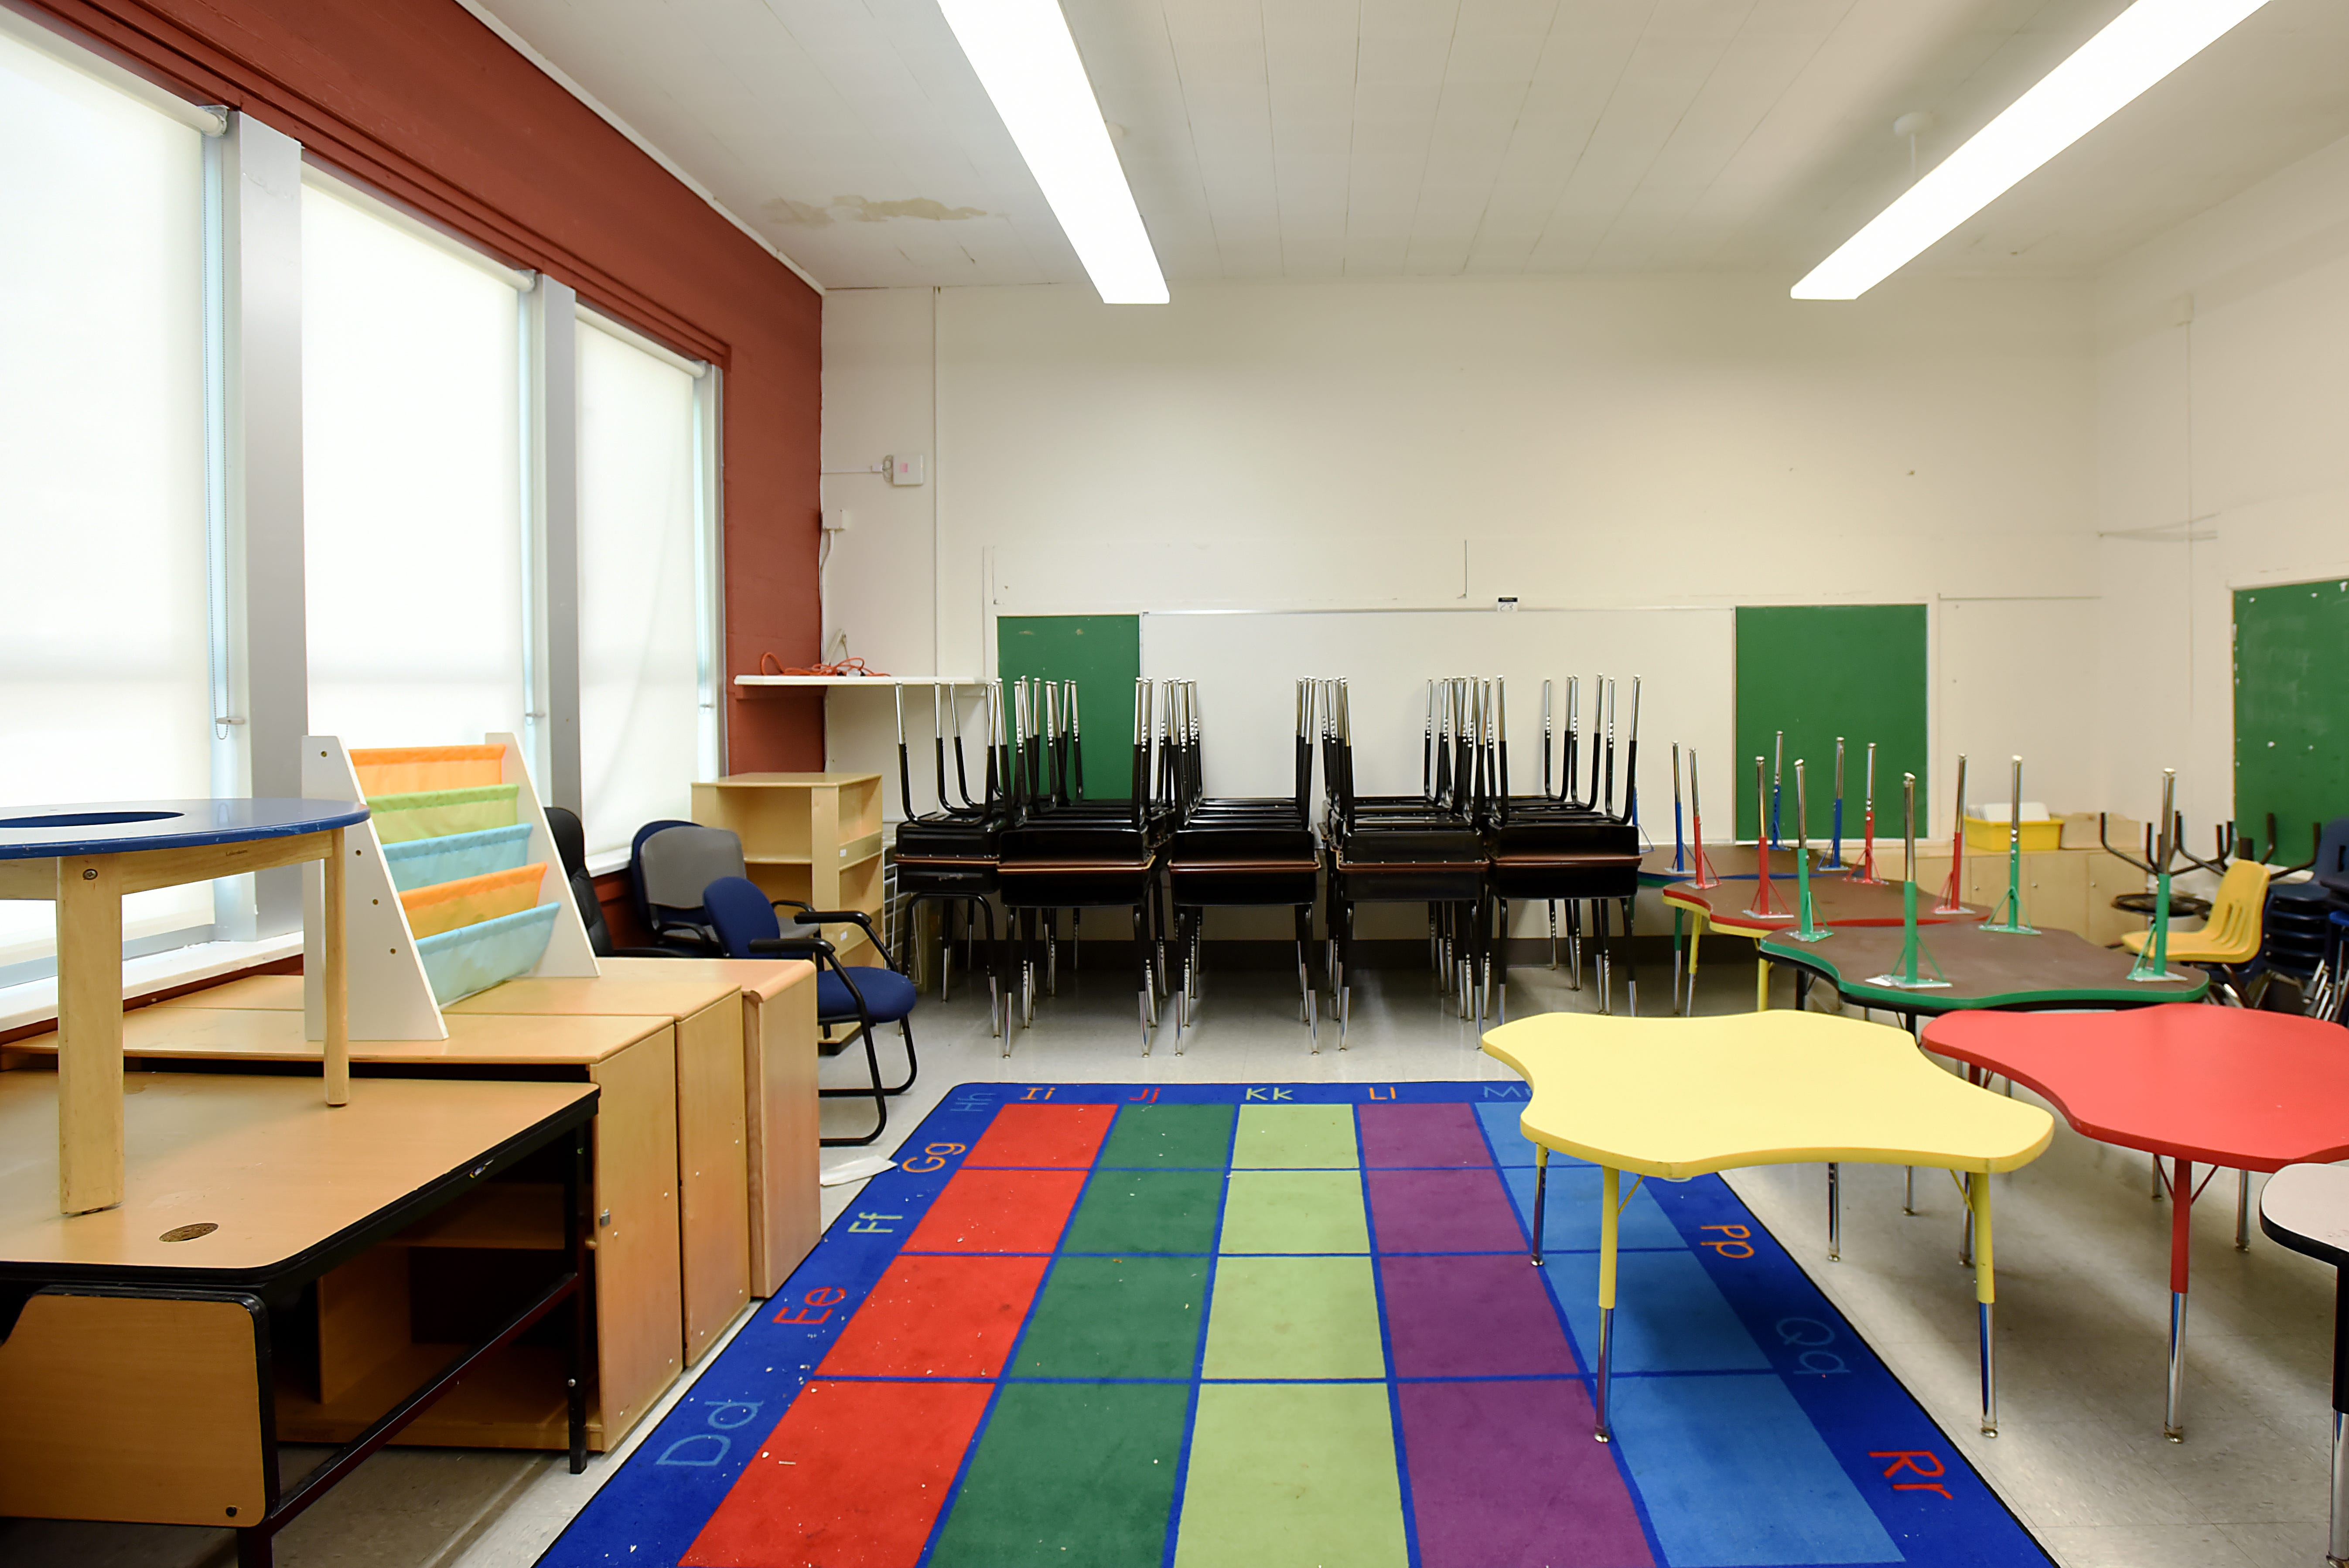 Lady Liberty Charter School in Newark has closed. An auction was held at the school to sell off the contents of its building in the summer of 2018.